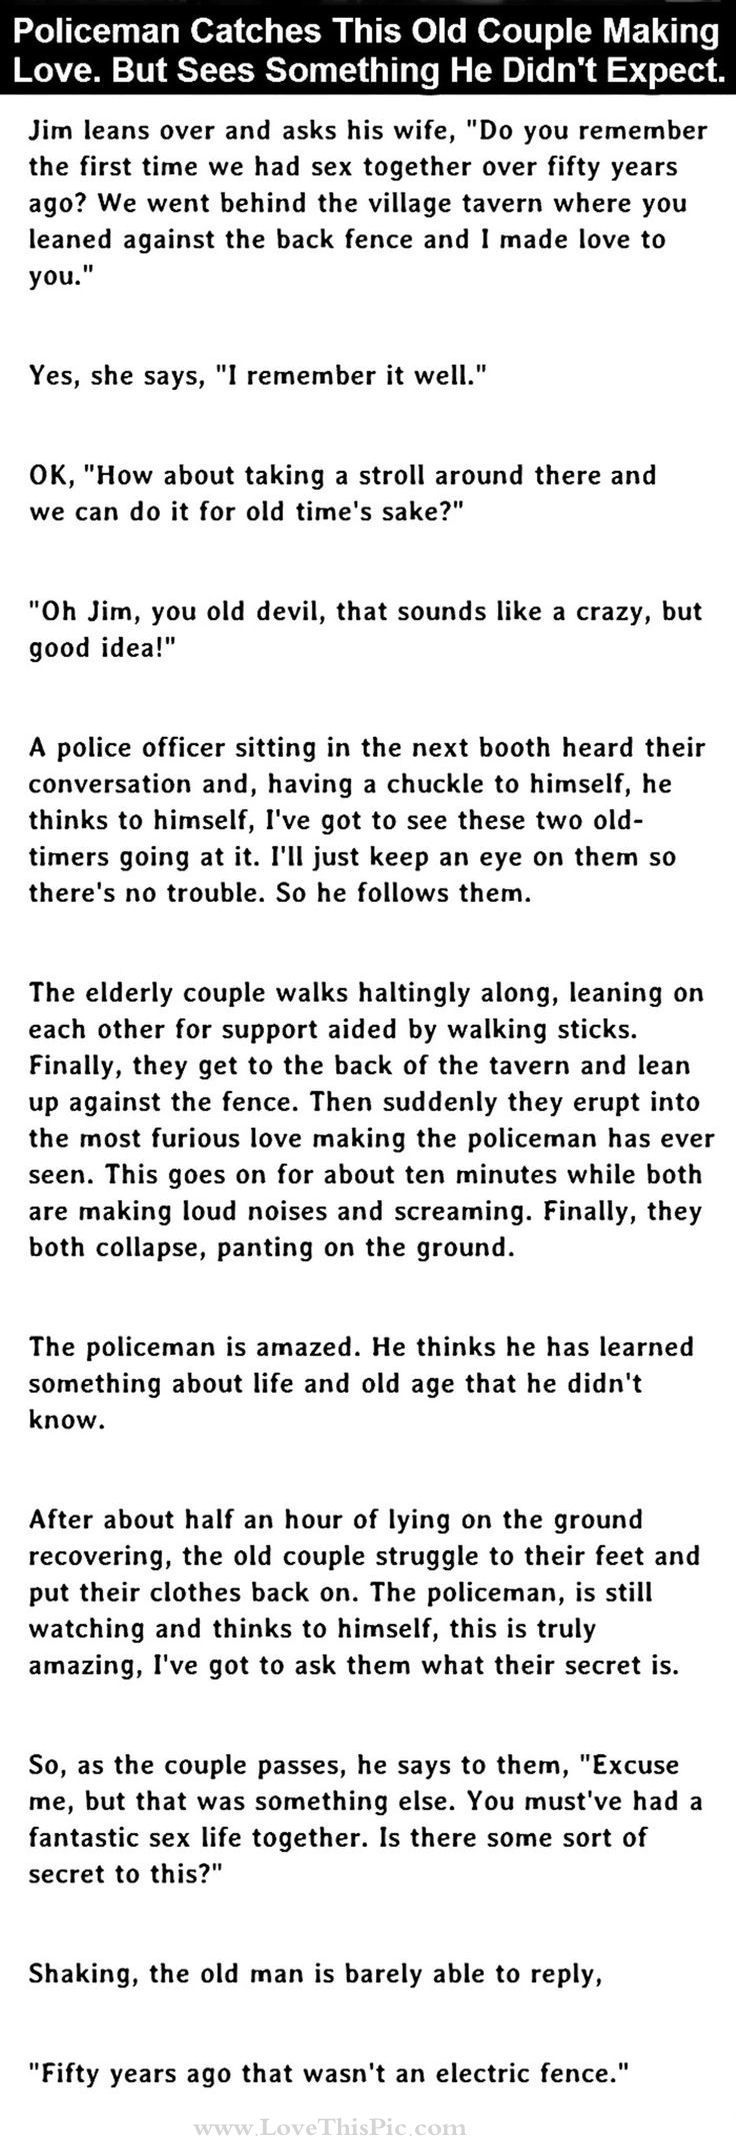 Policeman Catches Old Couple Making Love But He Didn t Expect This funny jokes story funny quote funny quotes funny sayings joke hilarious humor